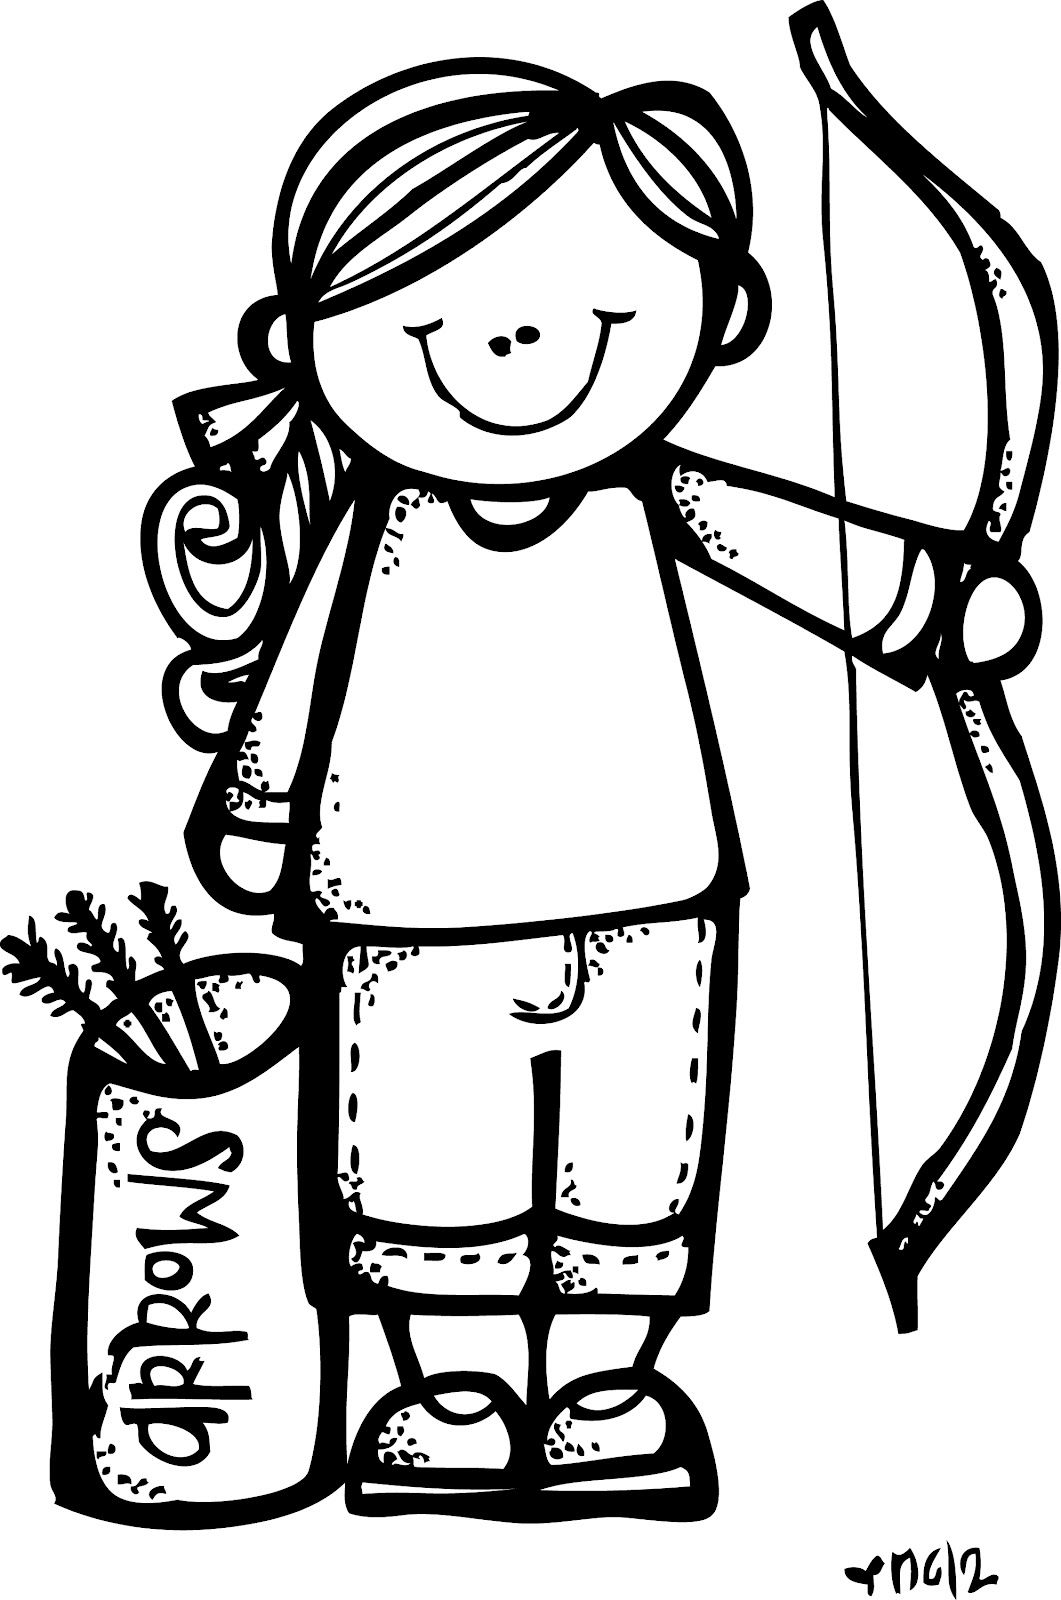 Summer Activities Clipart Black And White Images Gallery Melonheadz Lds Illustrating Girls Camp Illustrations Para Rh Ca